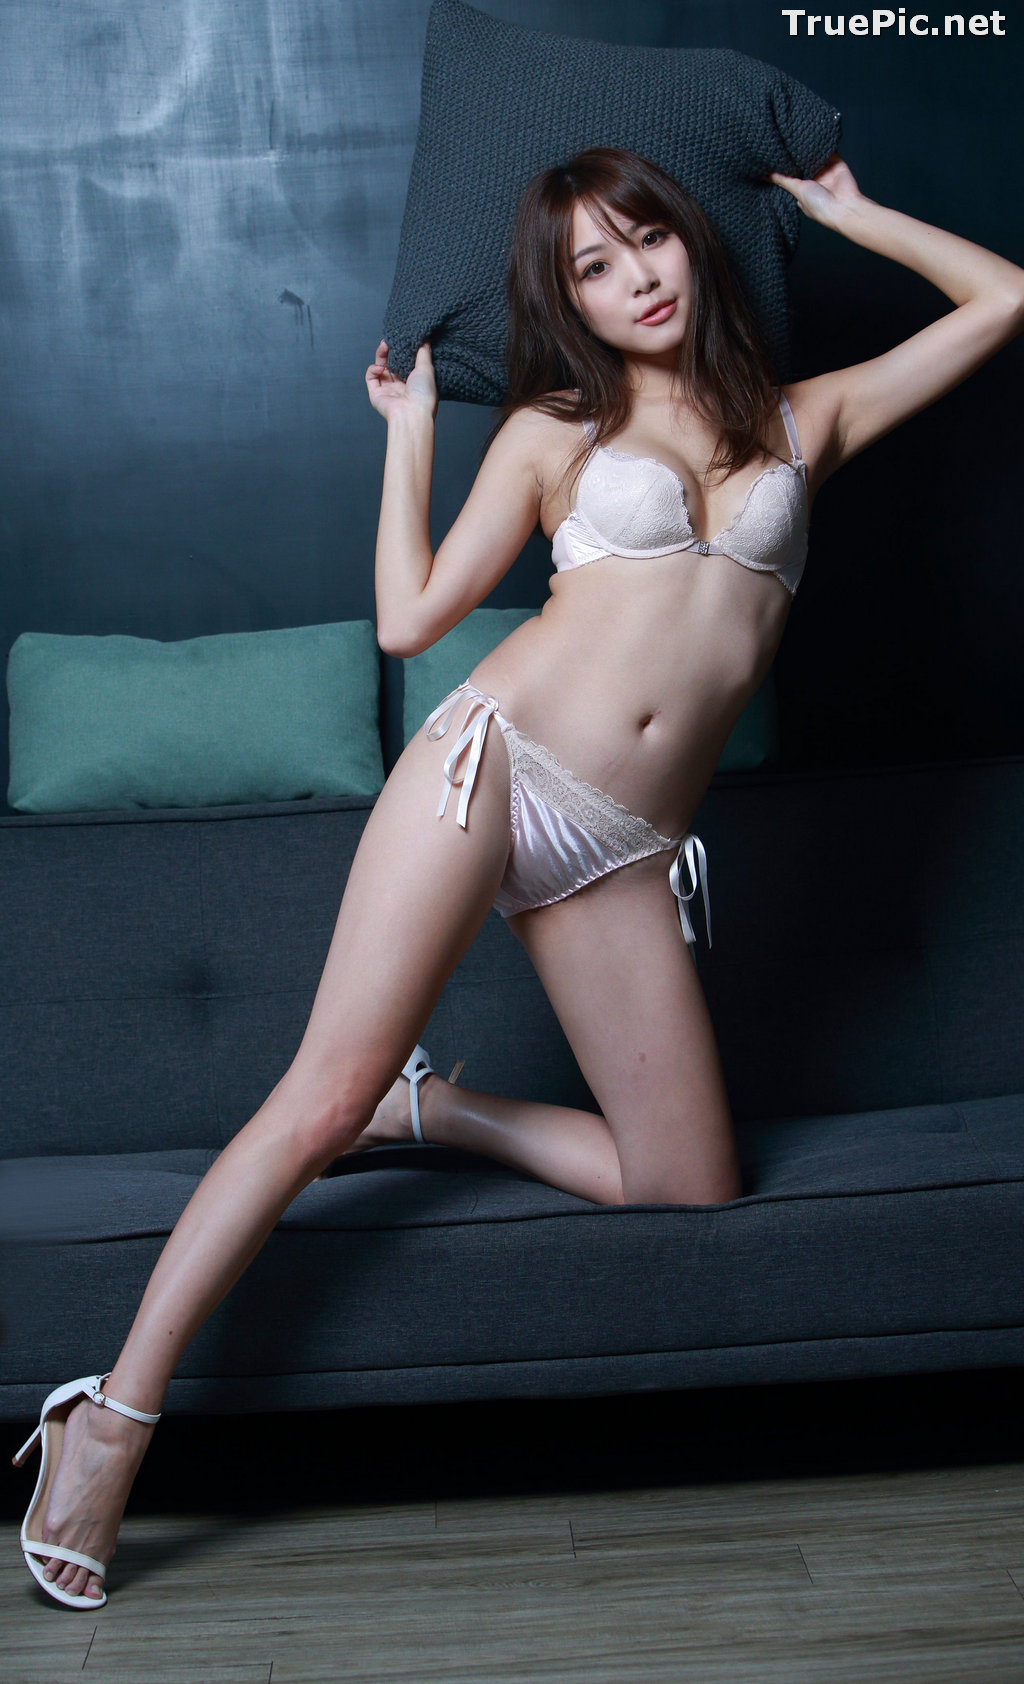 Image Taiwanese Model - Ash Ley - Sexy Girl and White Lingerie - TruePic.net - Picture-9